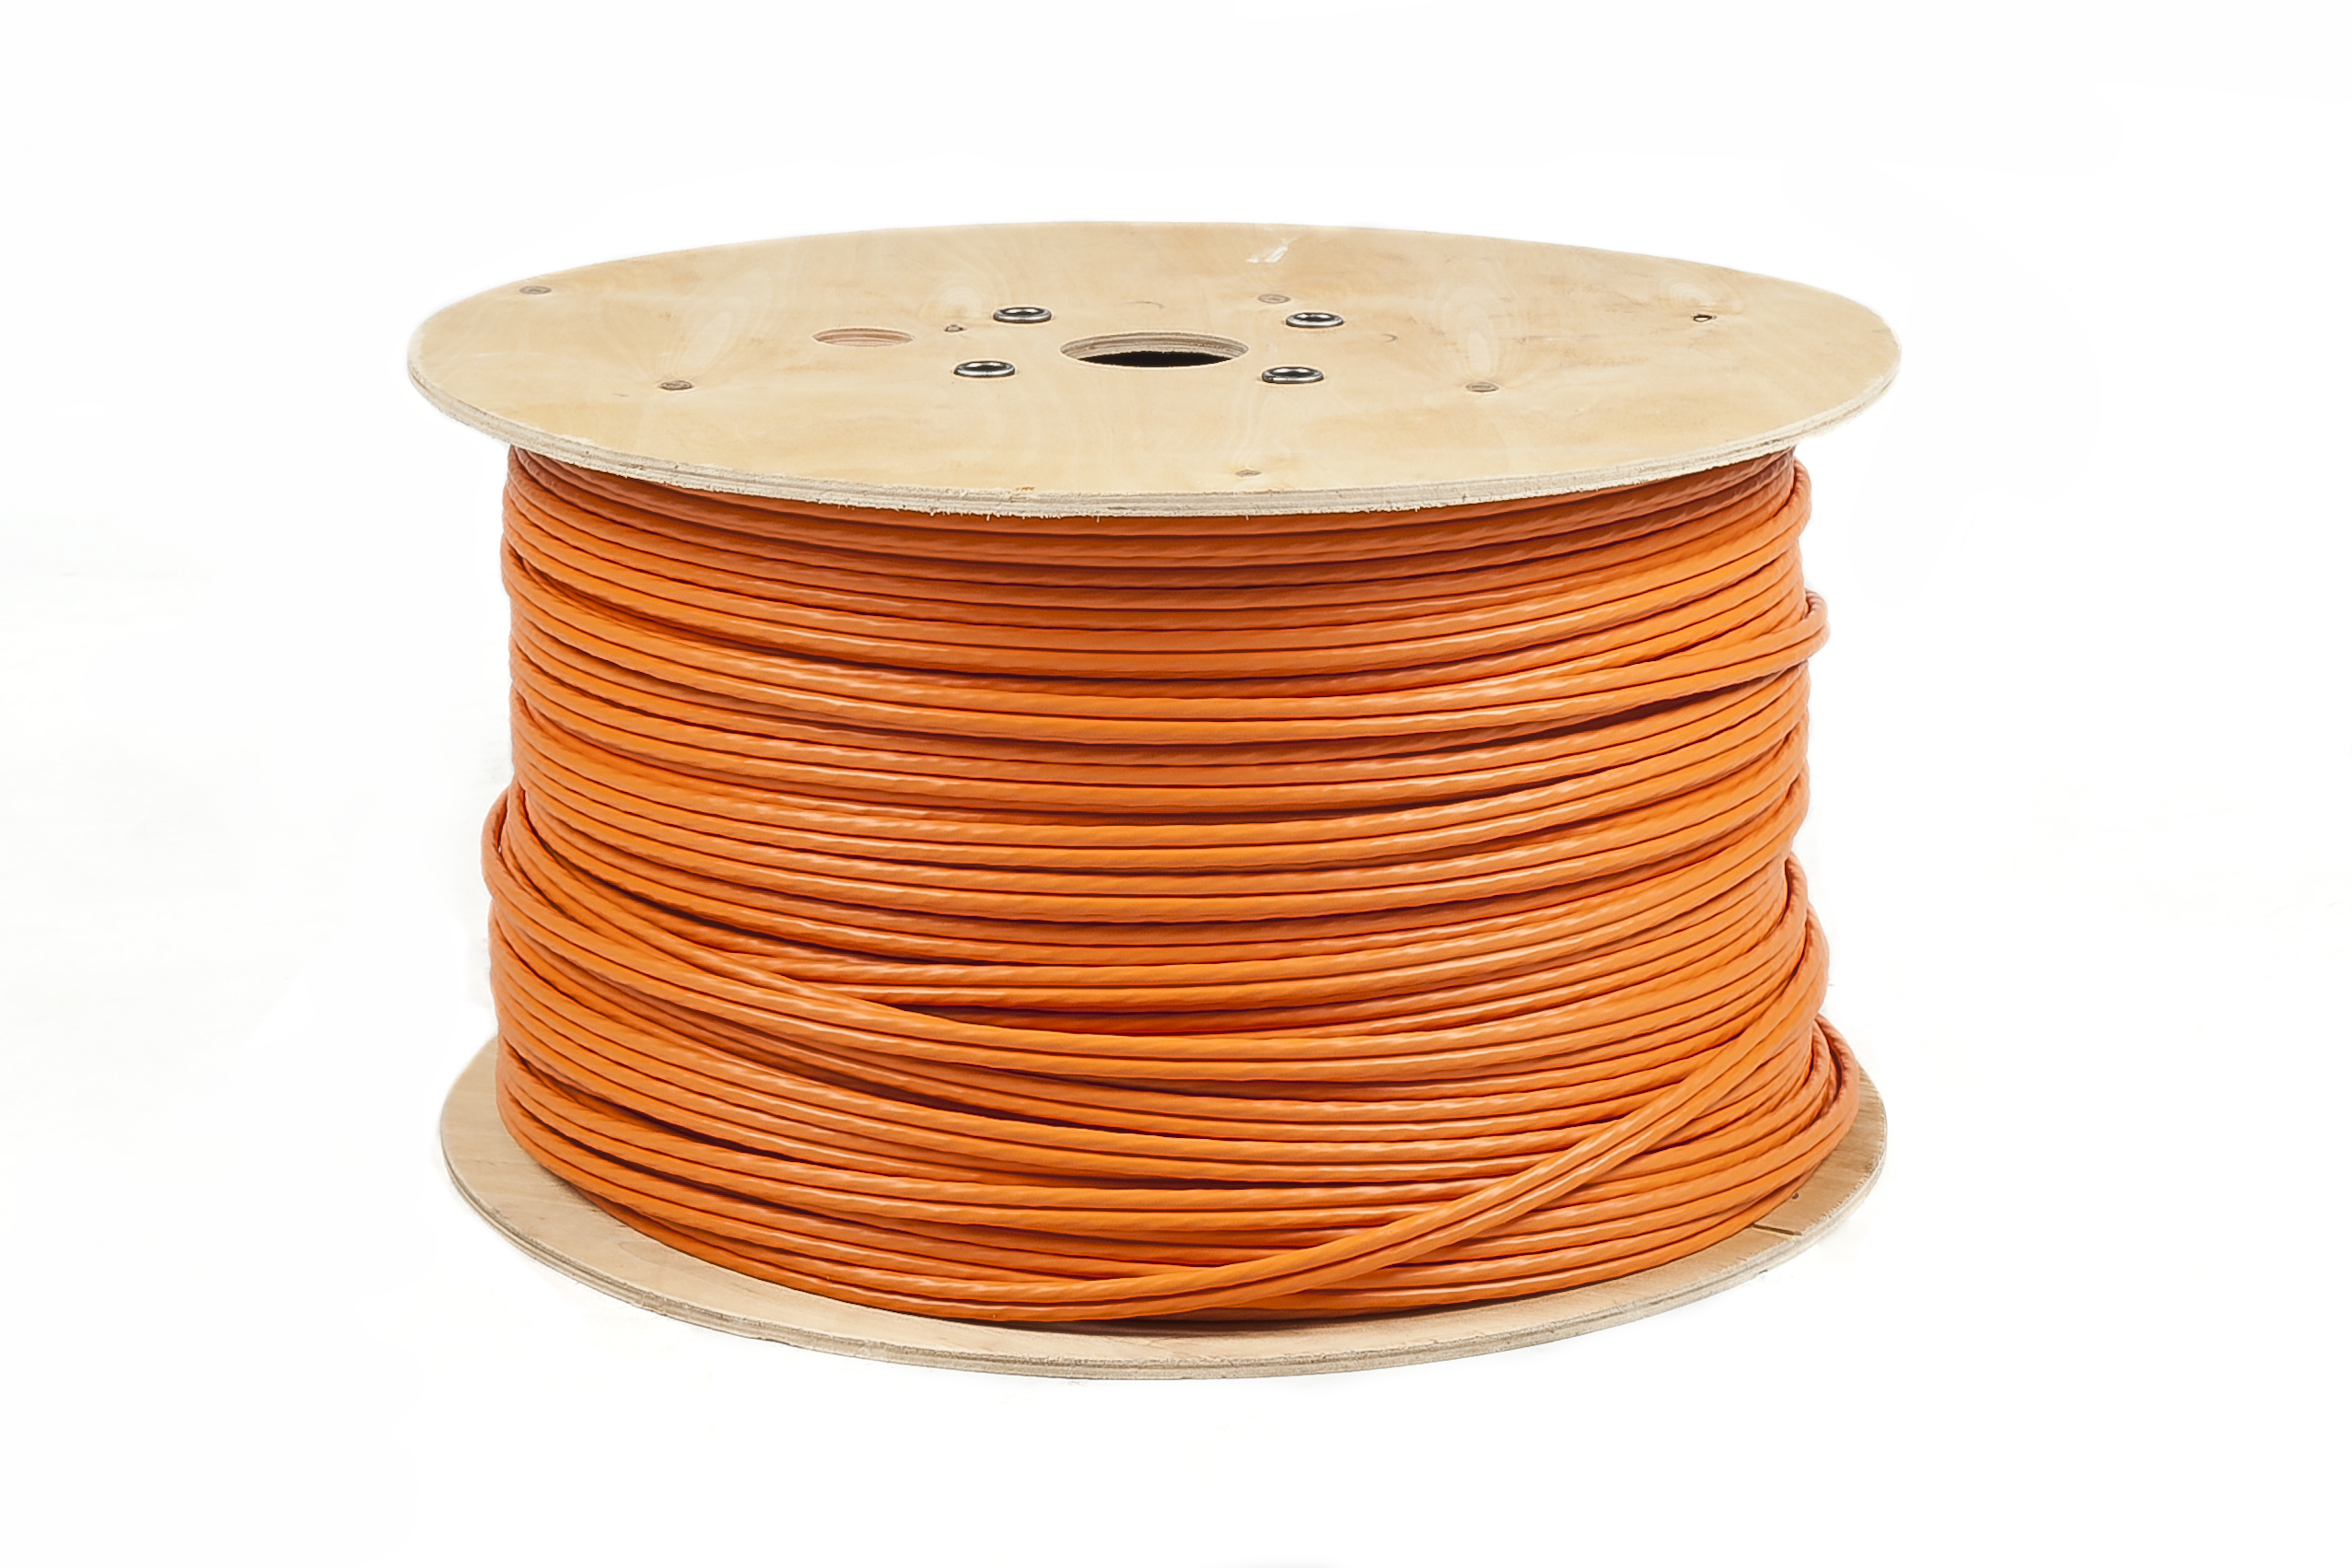 150m cat7 duplex netzwerkkabel verlegekabel kabel orange kat7 2x4x2xawg23 1 ebay. Black Bedroom Furniture Sets. Home Design Ideas